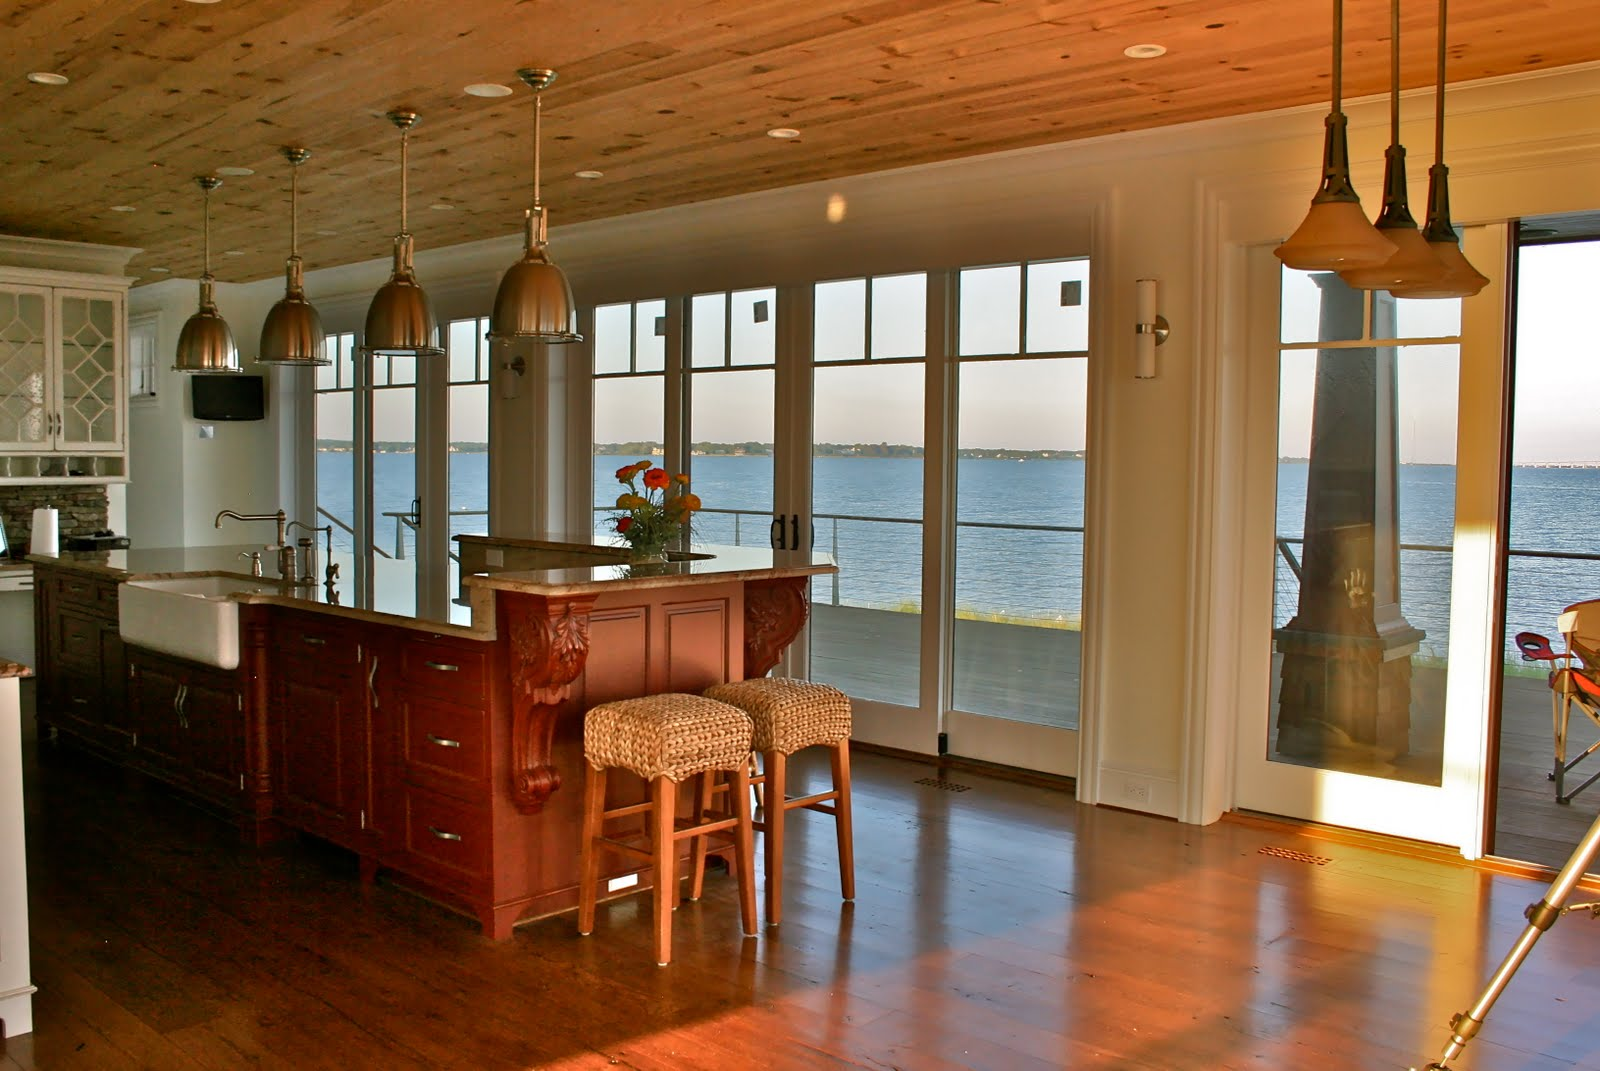 Color forte hamptons beach house paint color consultation - Beach house paint colors interior ...